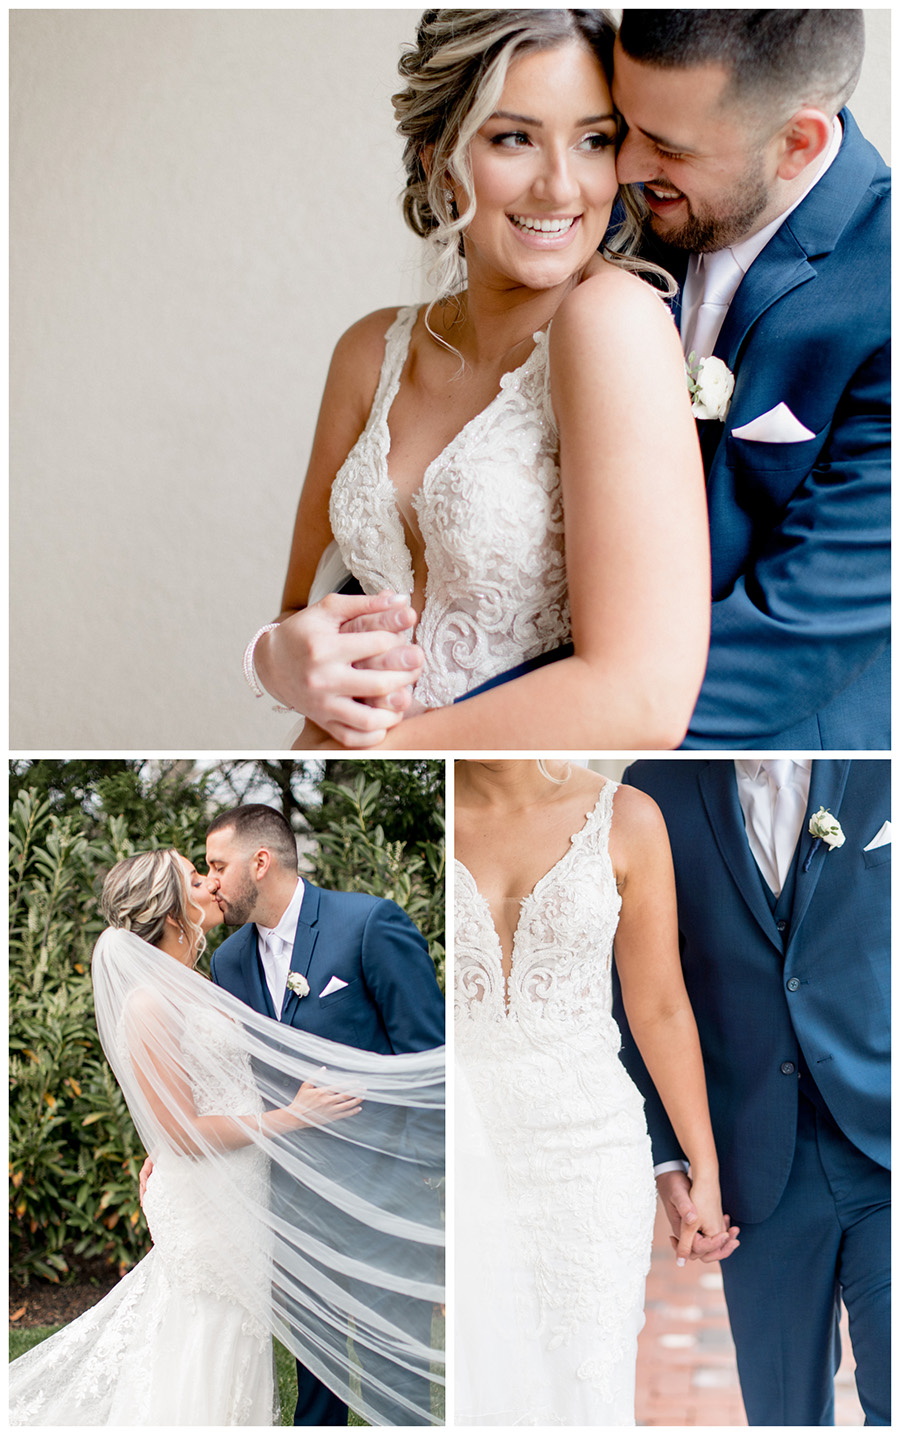 Tuscan inspired wedding dress with cathedral length veil and lace bodice